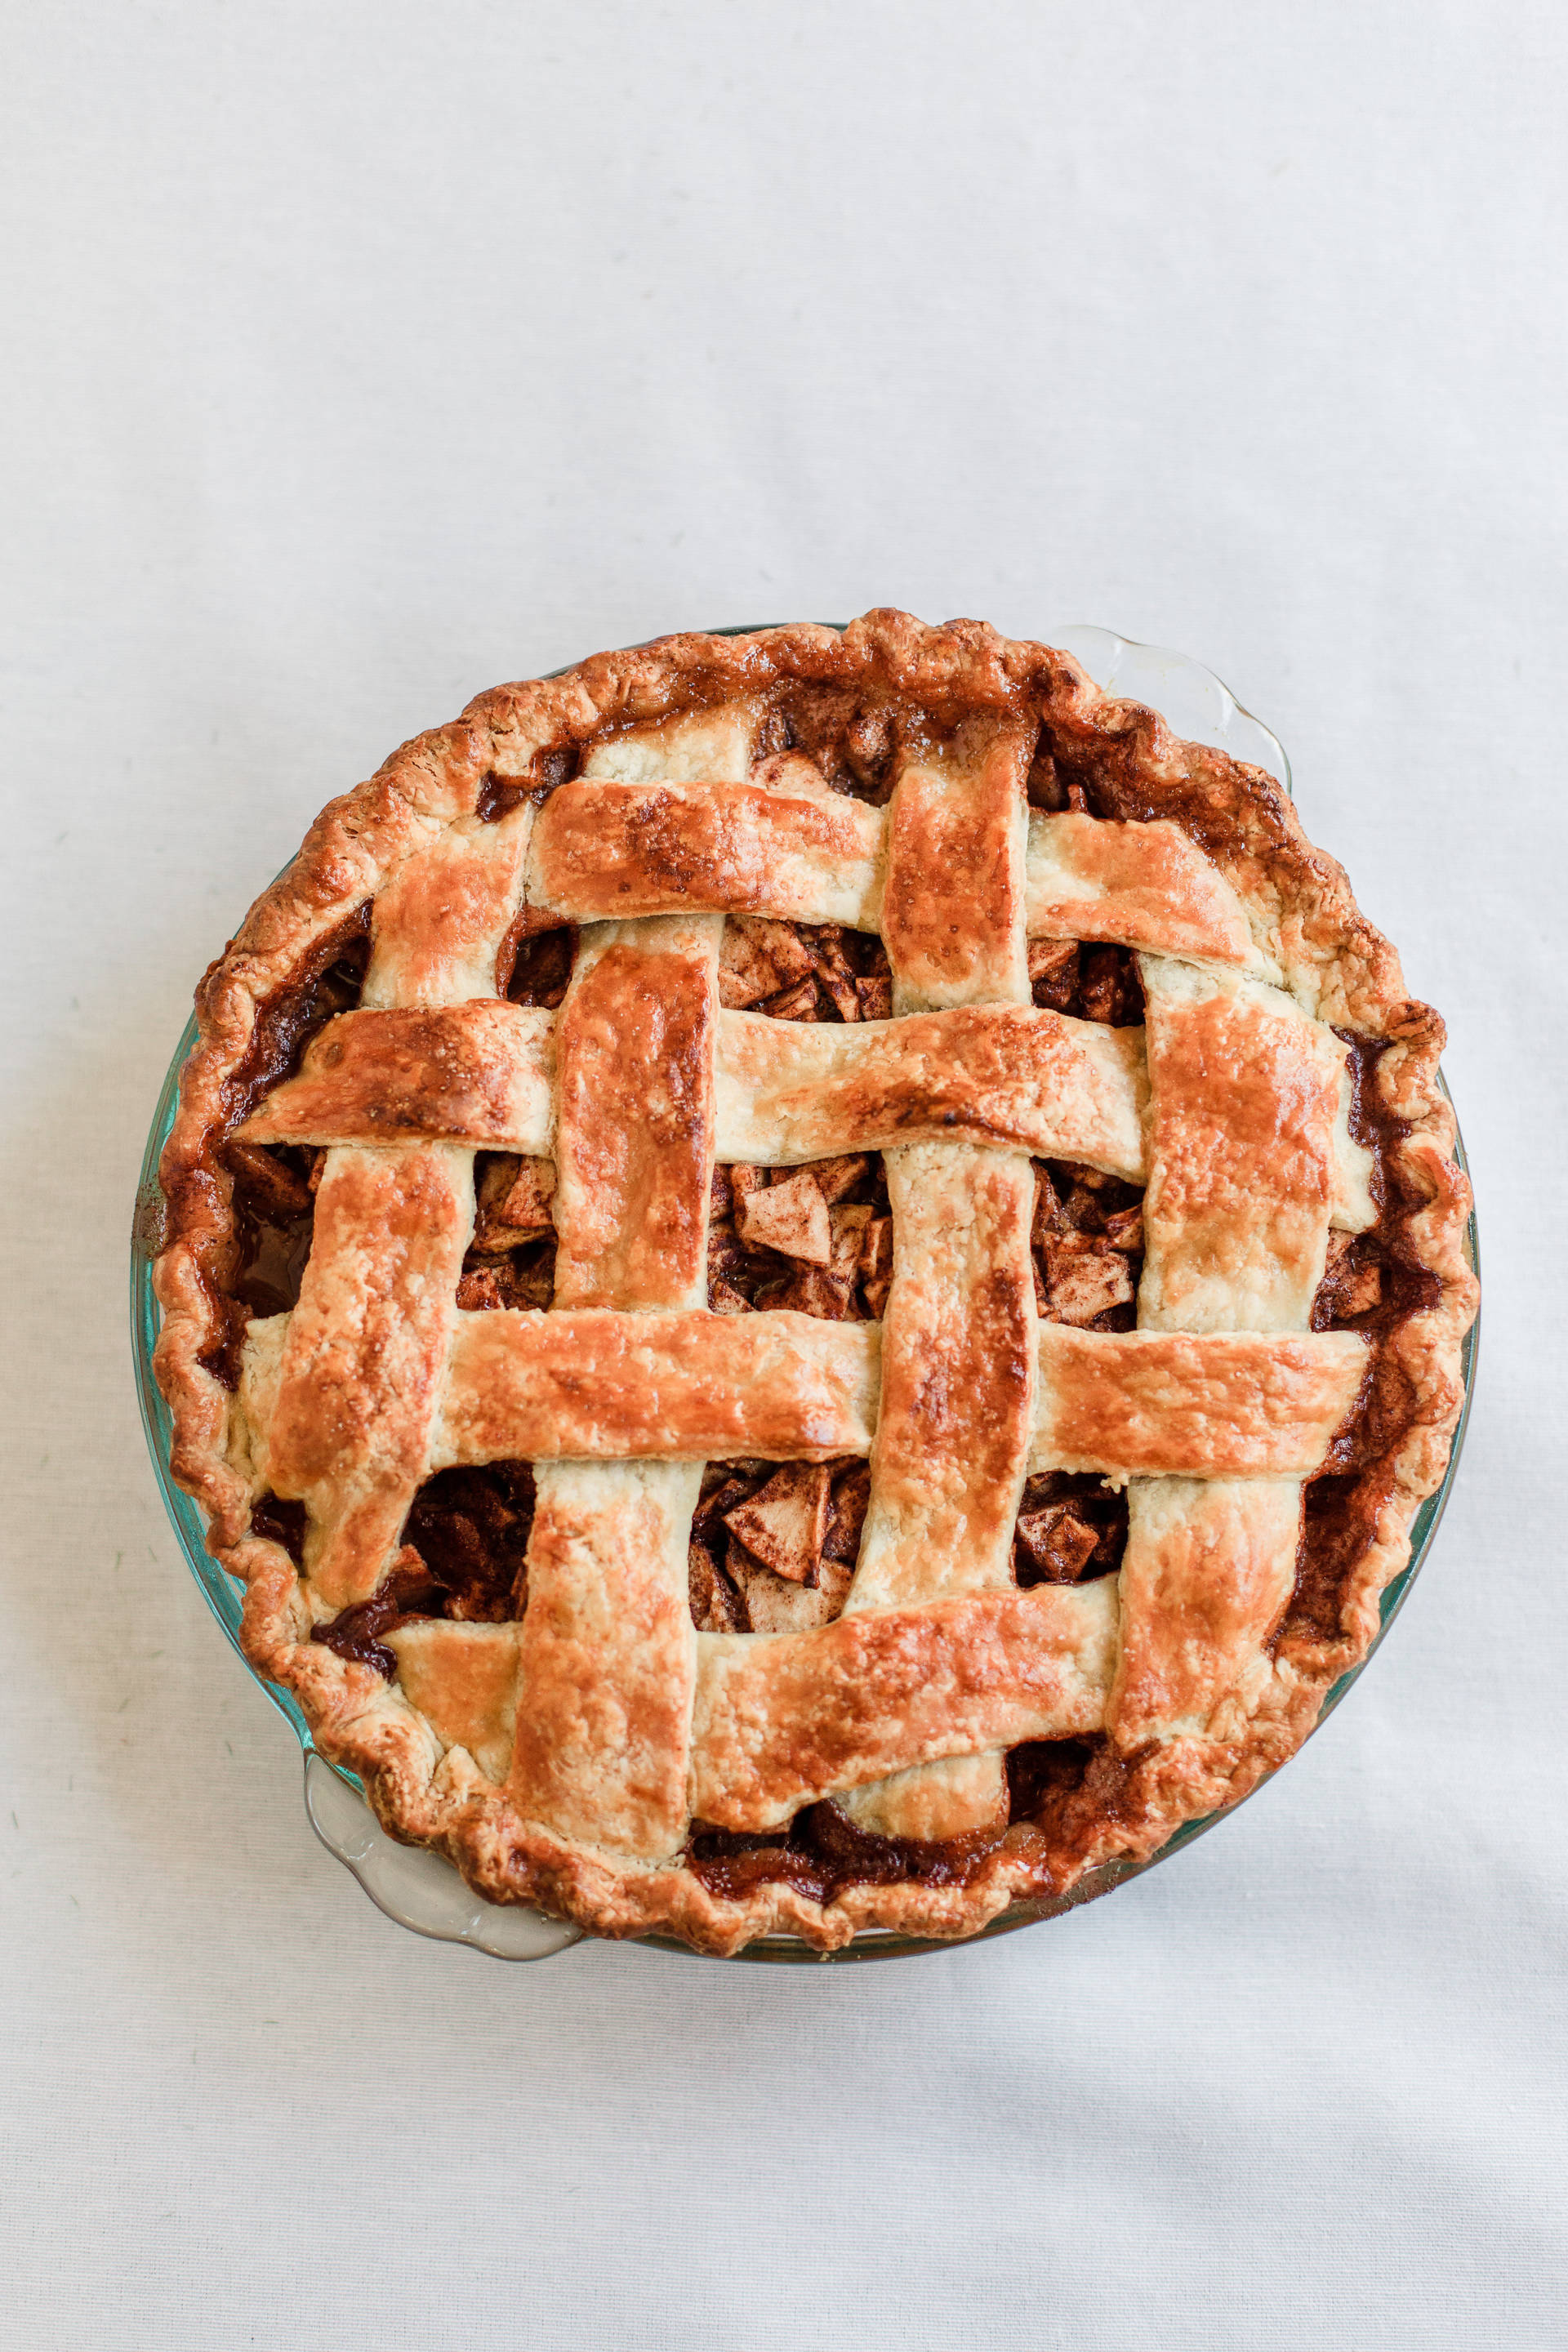 Home for the holiday's part 3: Make an Old Fashion Apple Pie that will leave your guests reminiscing about Thanksgiving for years to come!